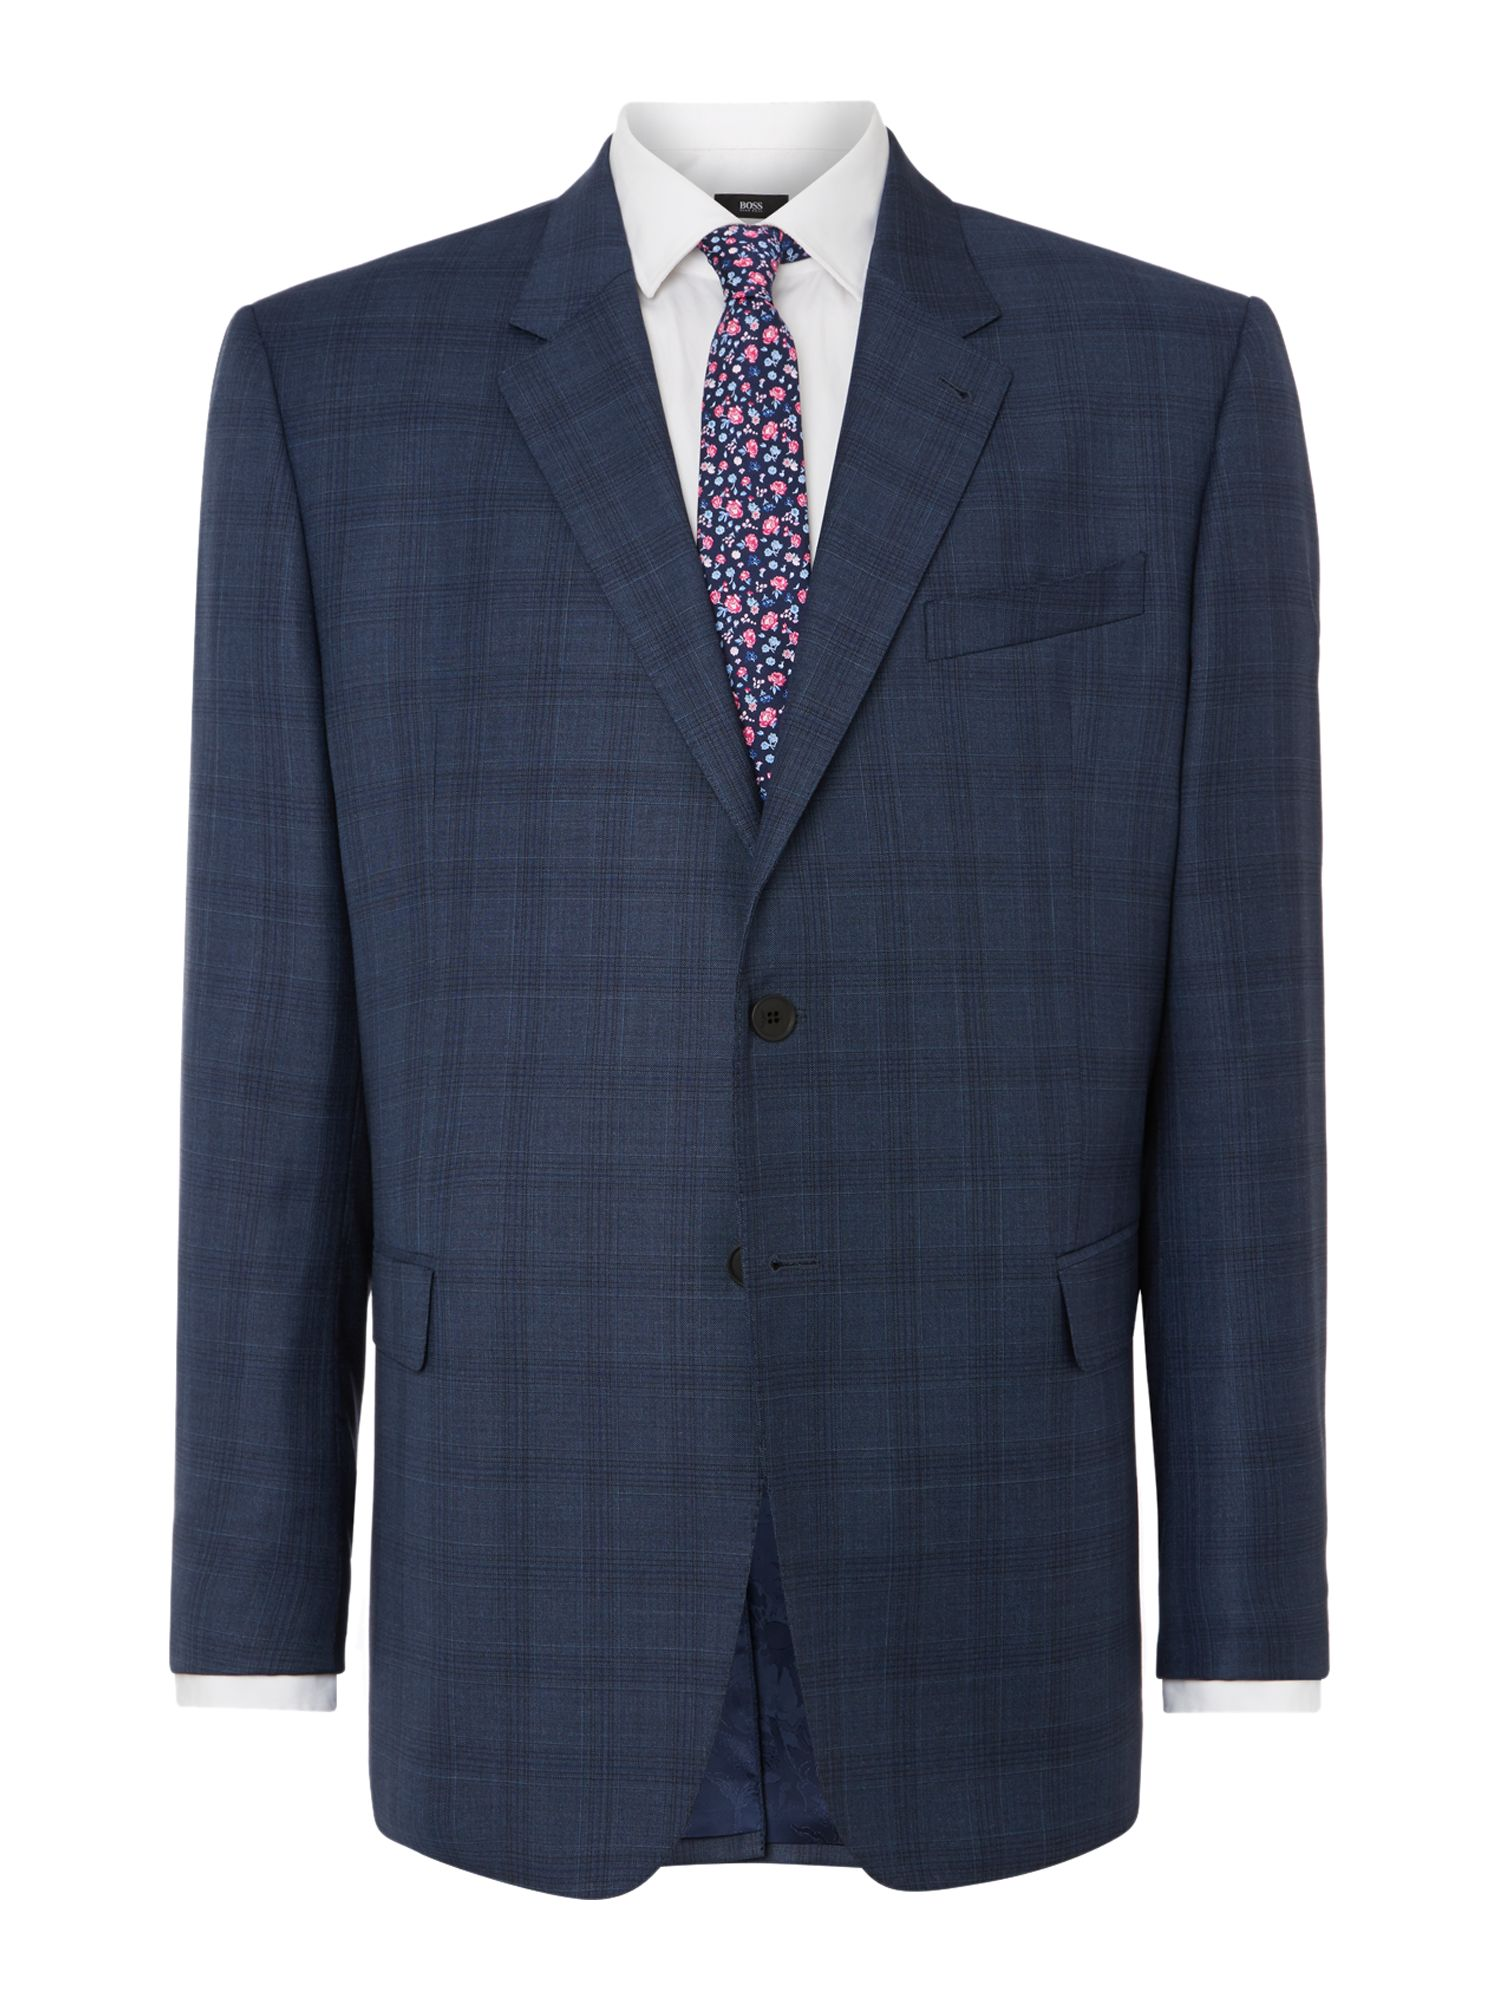 Men's Paul Smith London Byard Slim Fit Prince Of Wales Check Suit